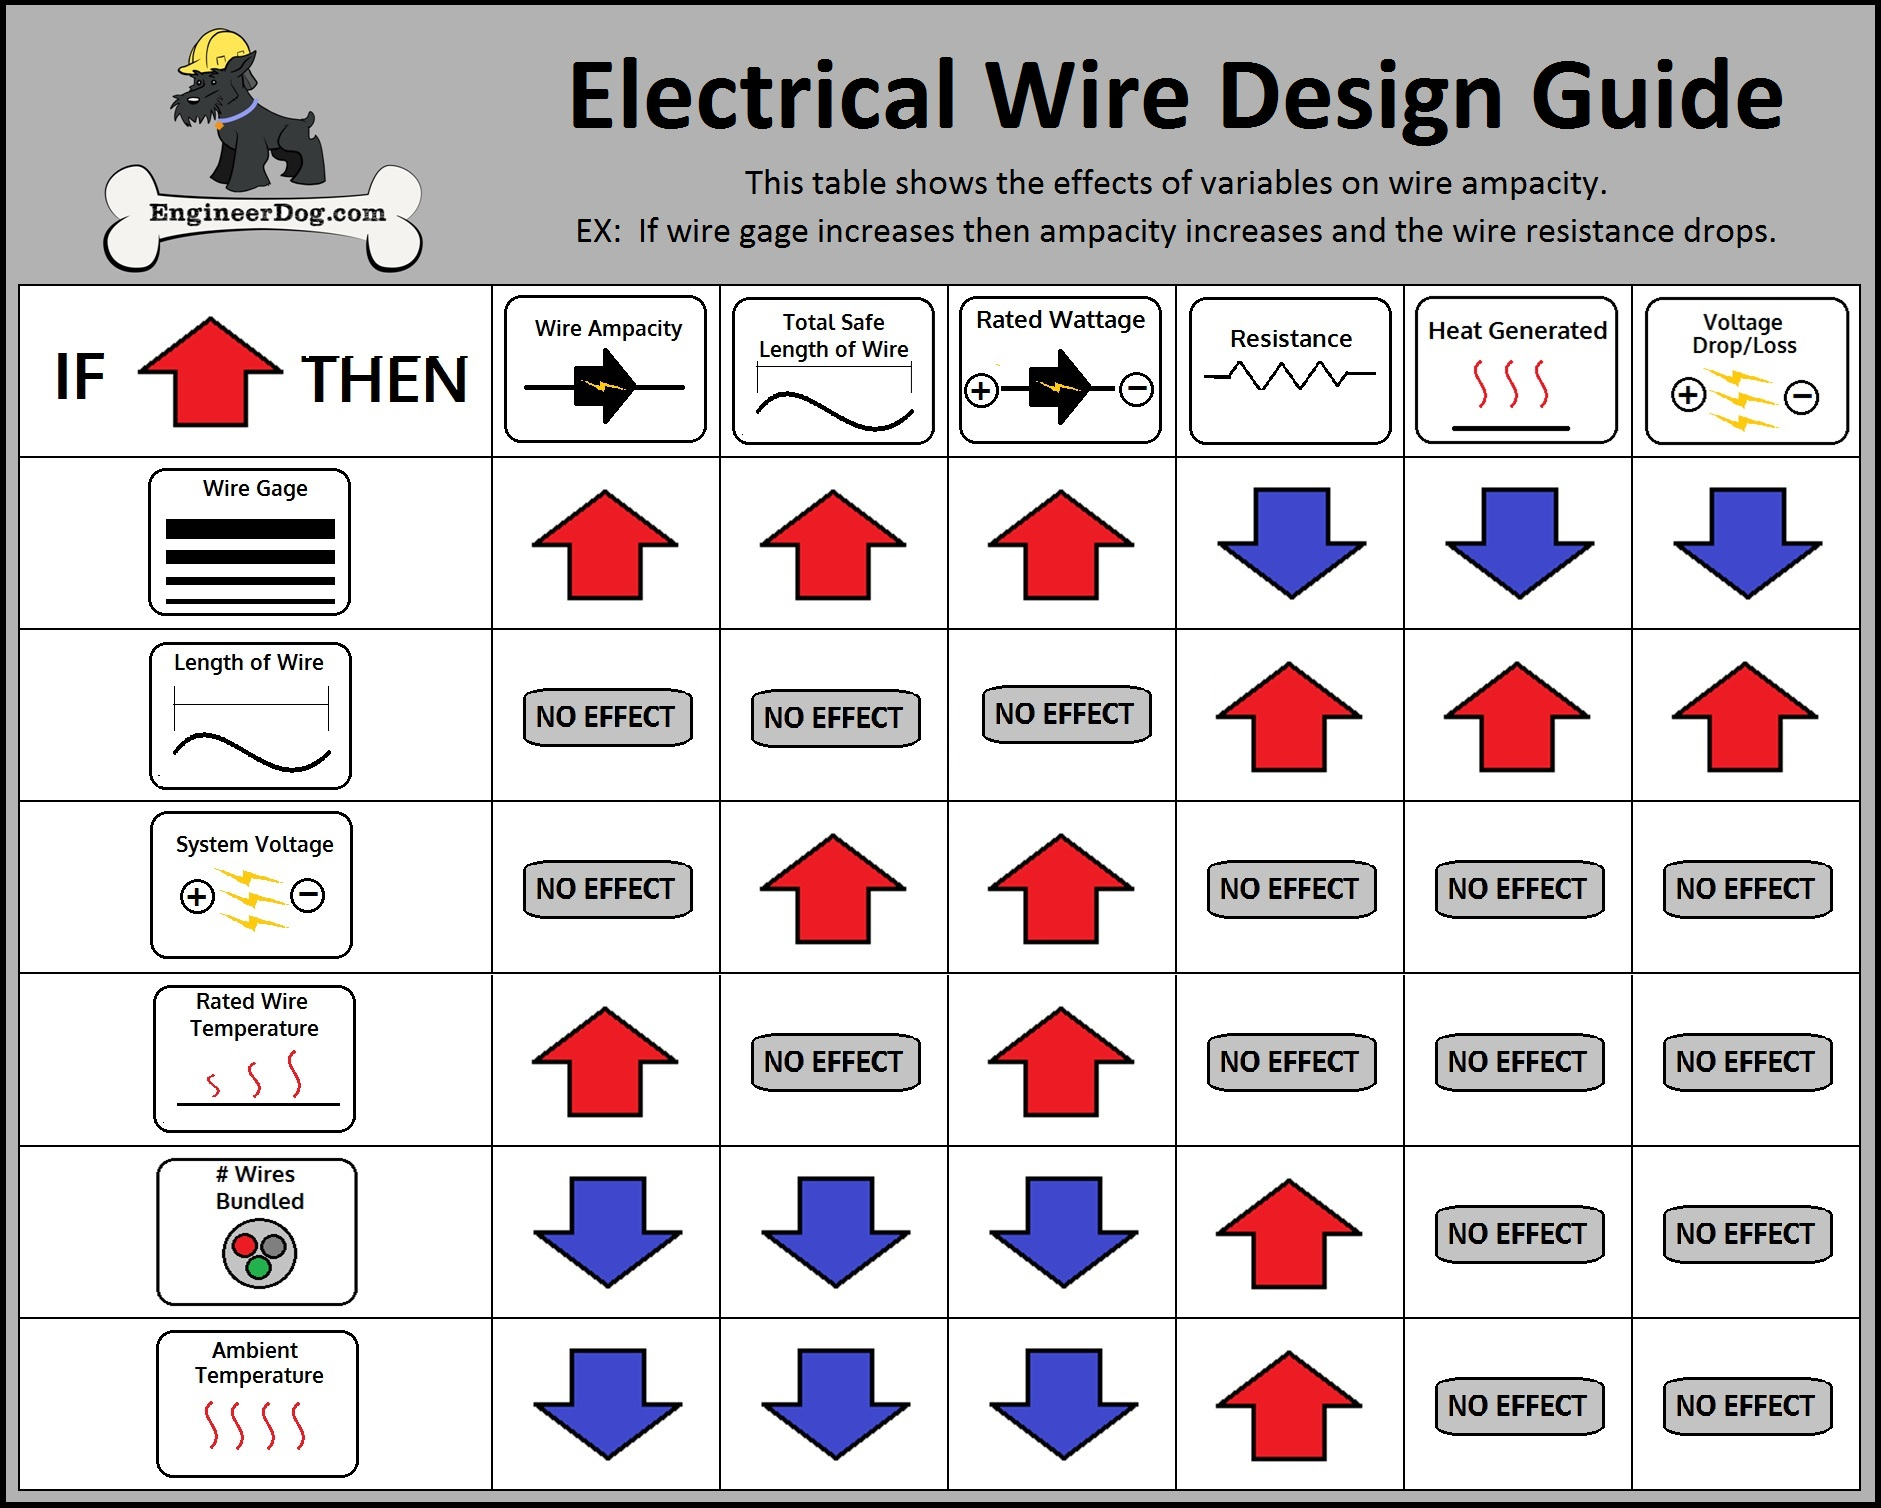 Home wiring amp rating diagram awg wire gauge chart elect with symbols for also all data rh feuerwehr randegg